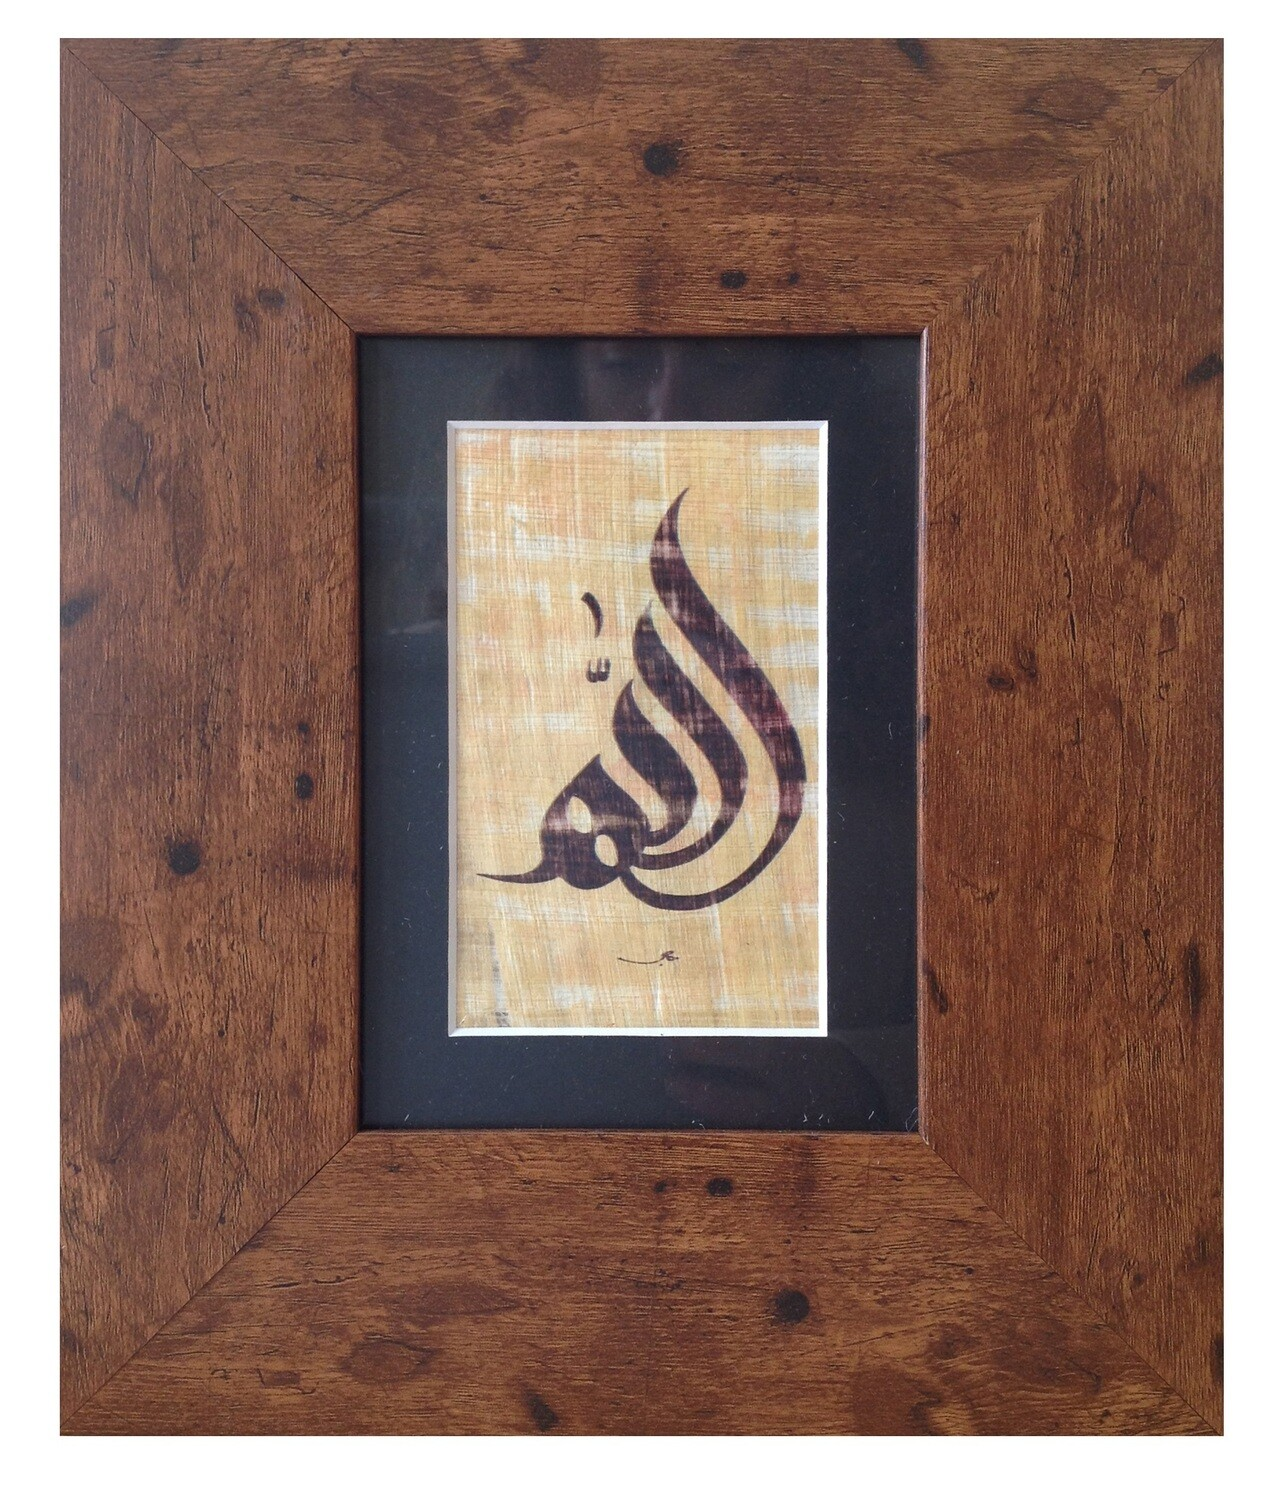 Allah Stylistic Calligraphy Design On Papyrus in Brown Frame